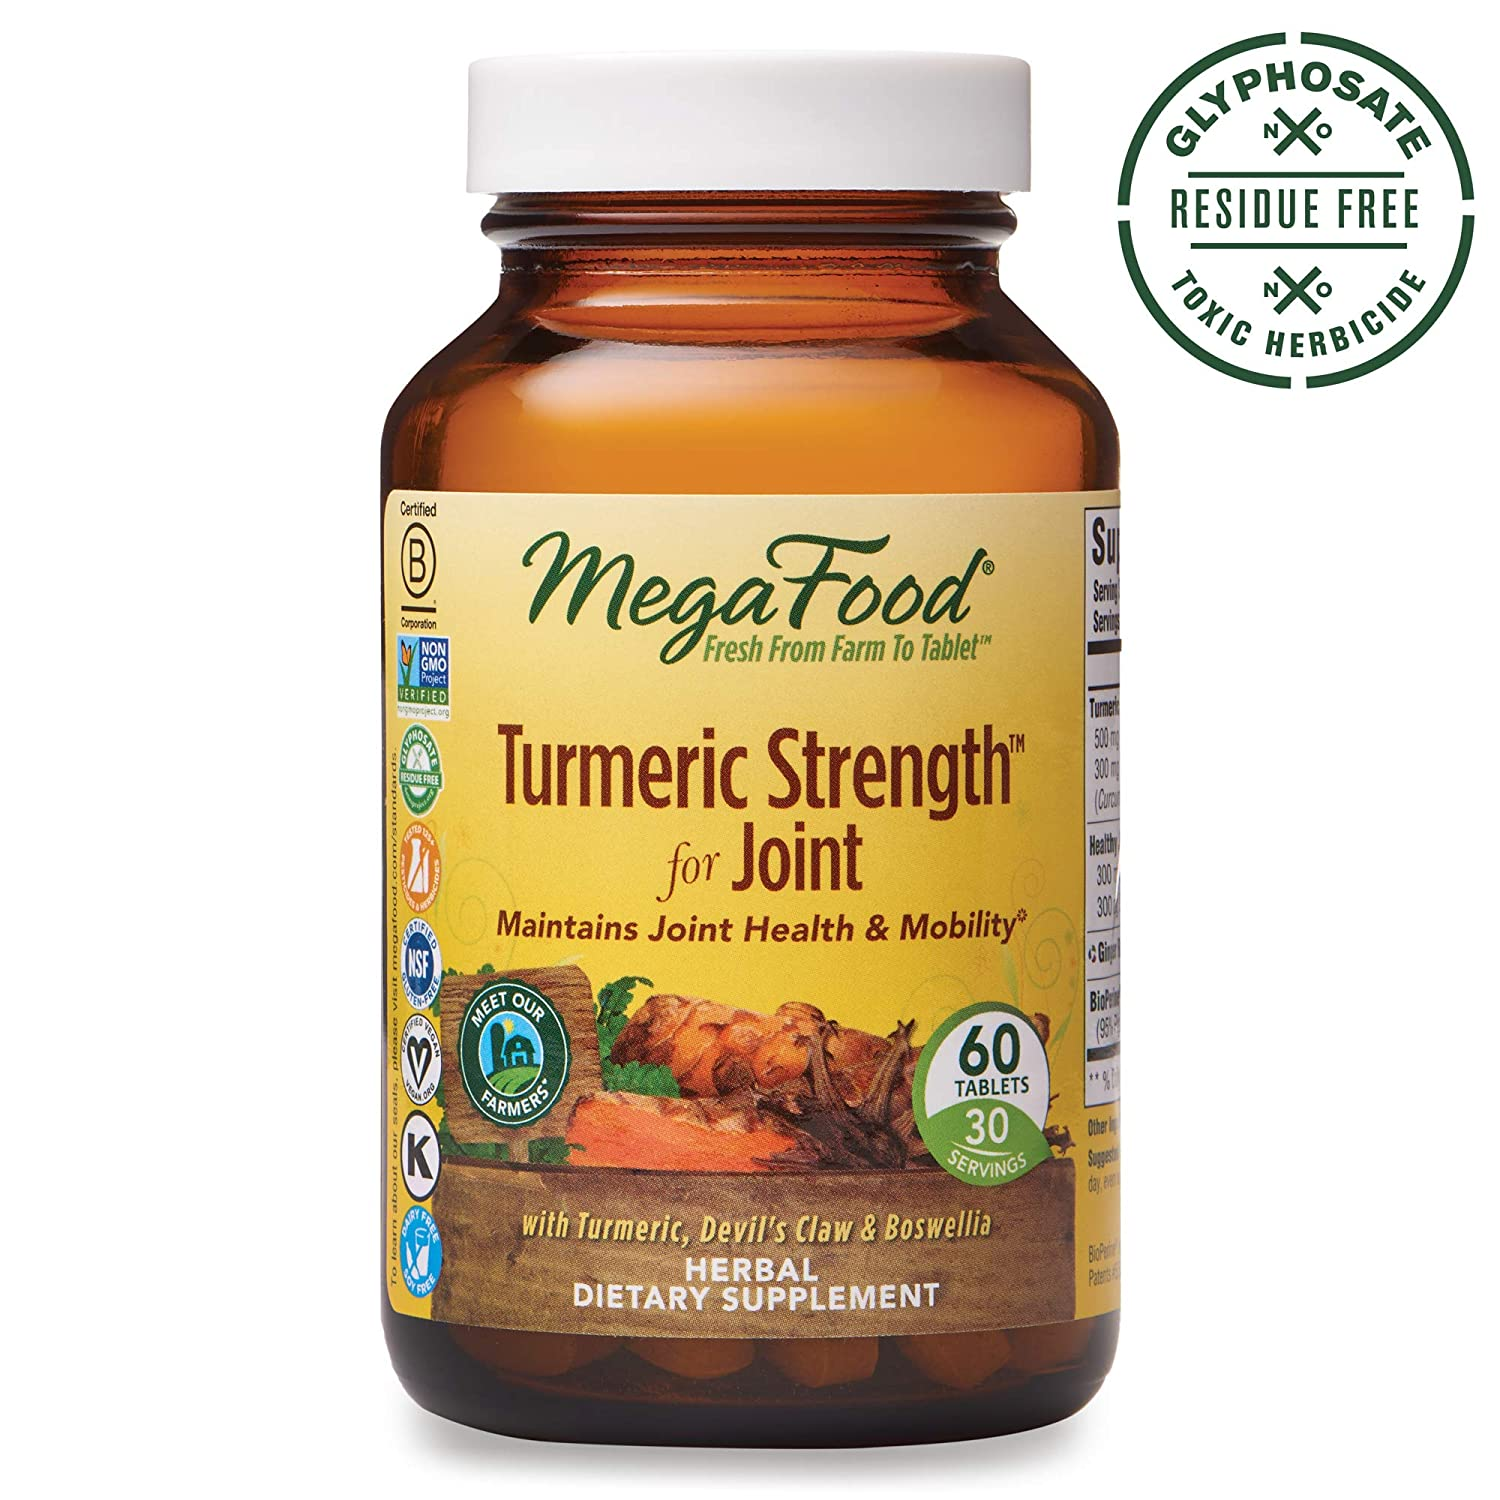 MegaFood, Turmeric Strength for Joint, Maintains Joint Health and Mobility, Vitamin and Herbal Dietary Supplement, Gluten Free, Vegan, 60 Tablets 30 Servings FFP